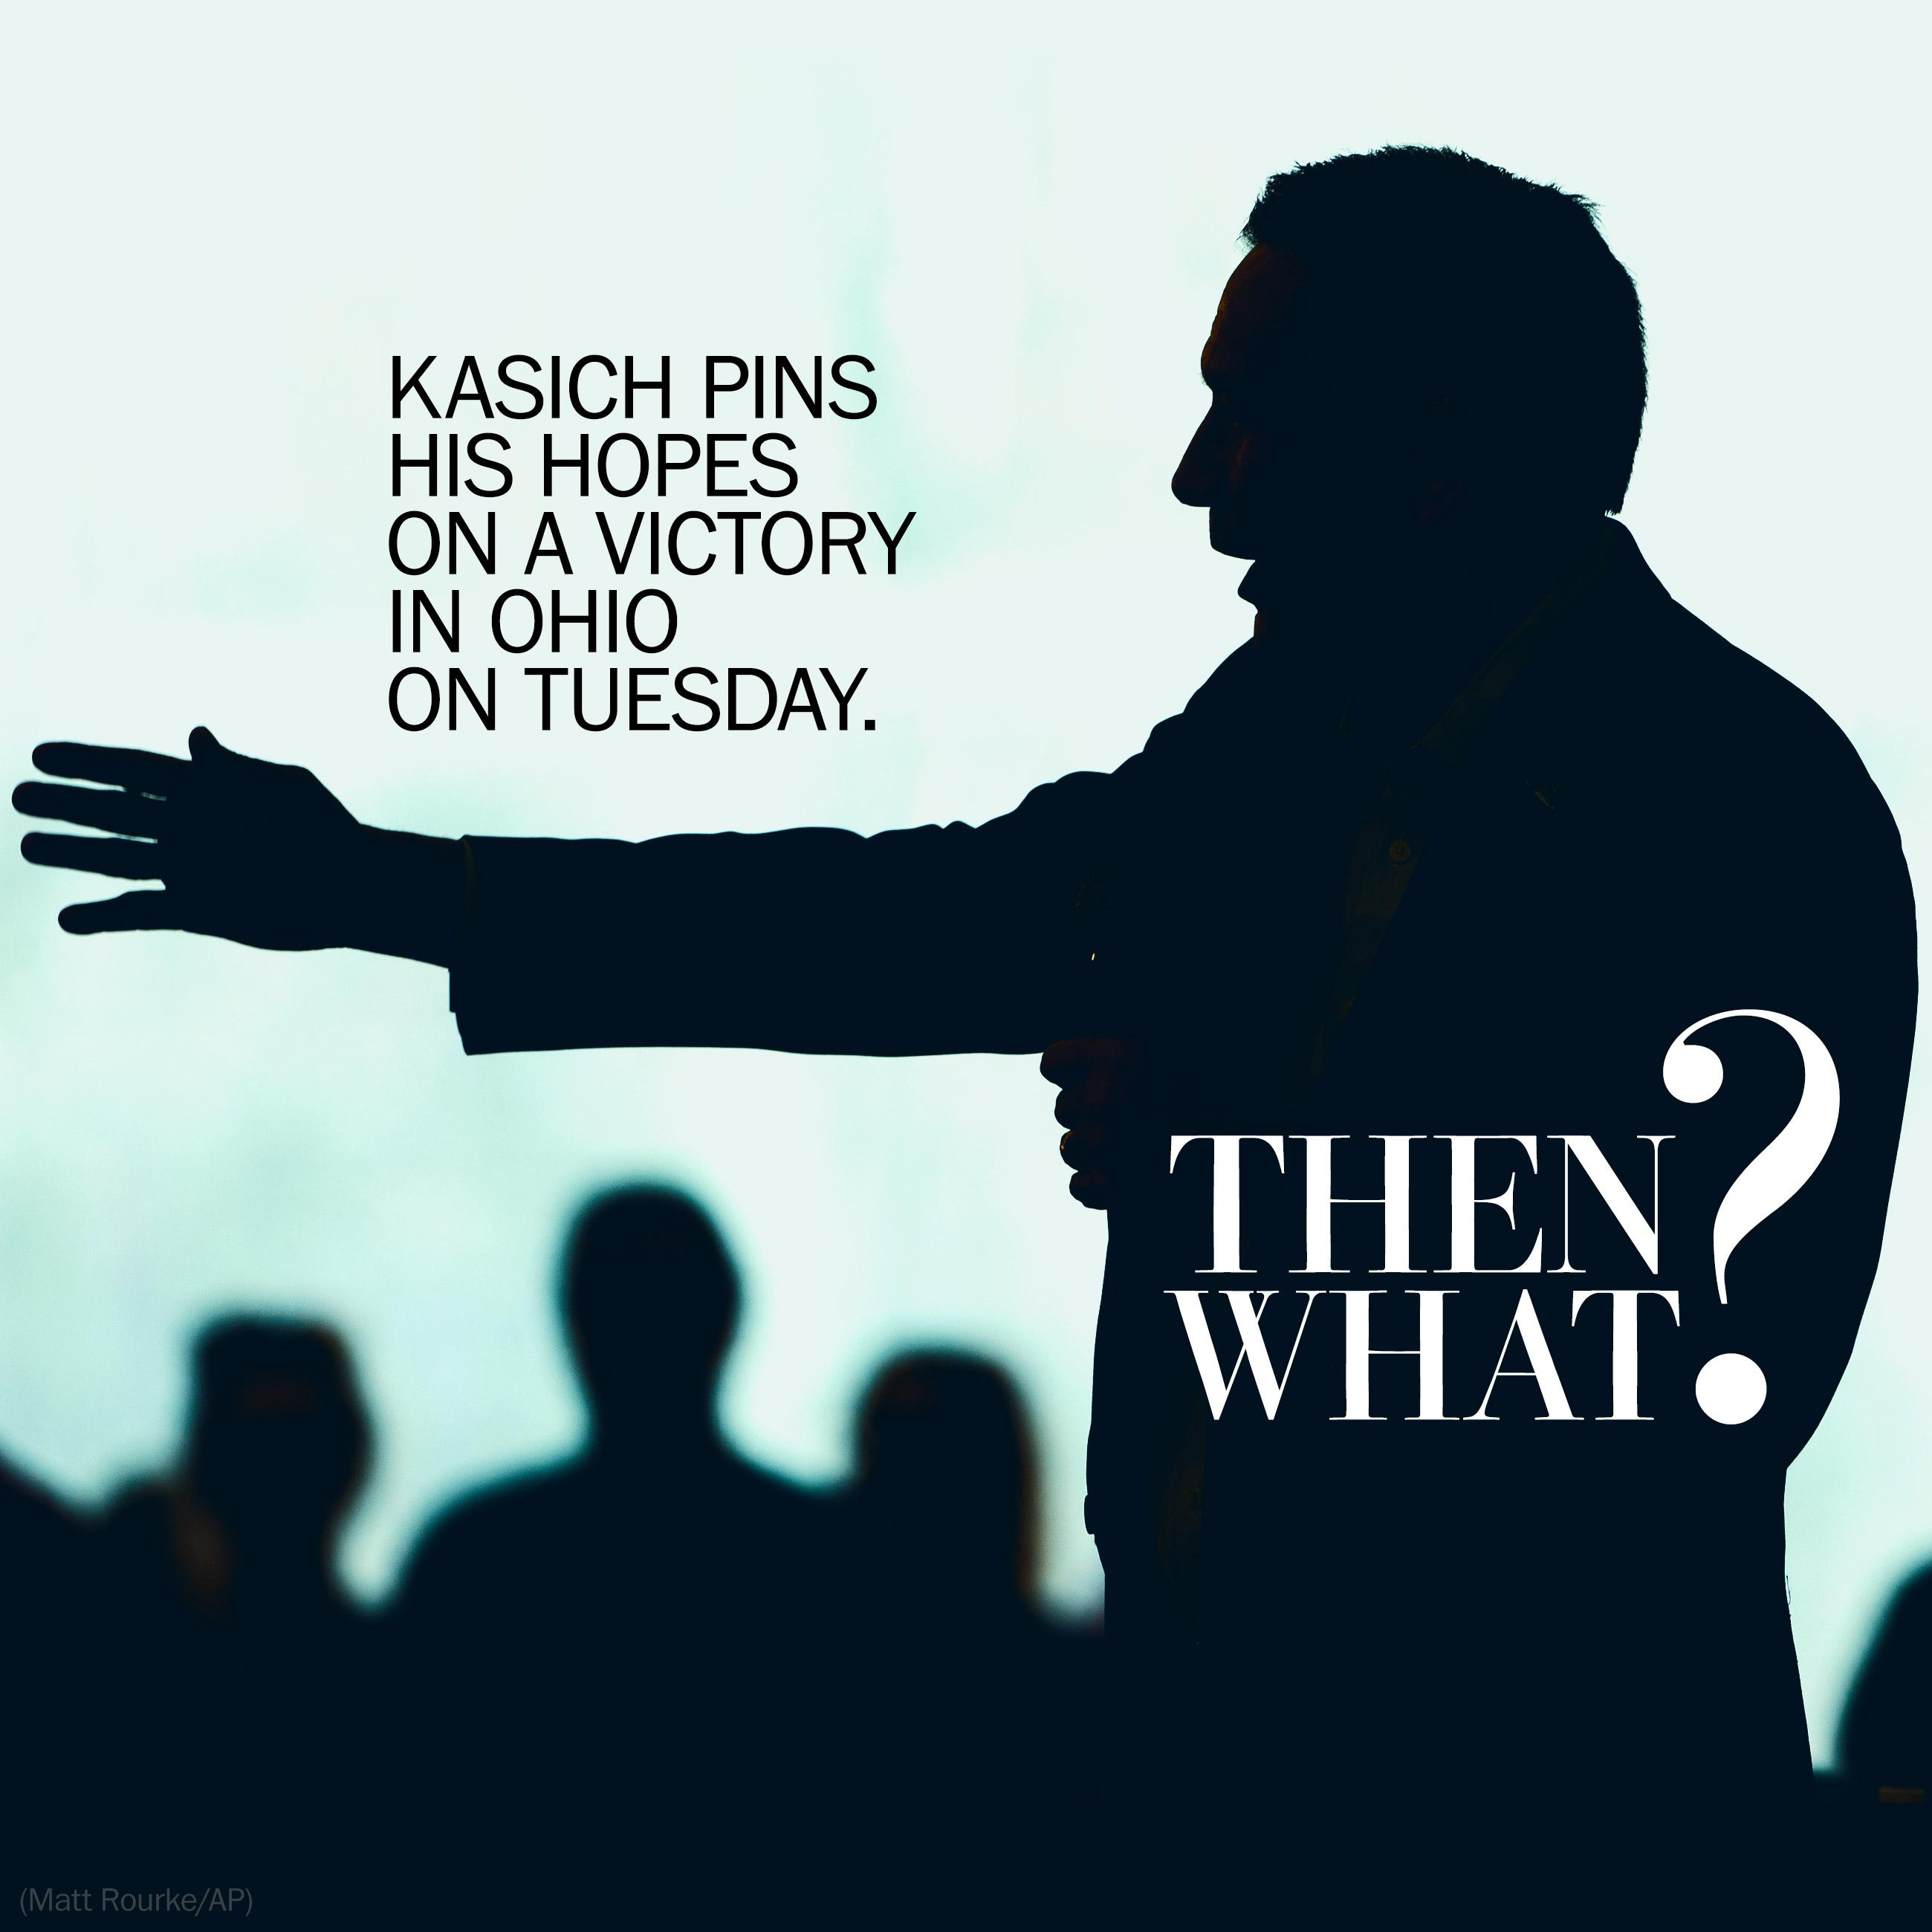 Kasich pins hopes on Ohio victory Tuesday. Then what?